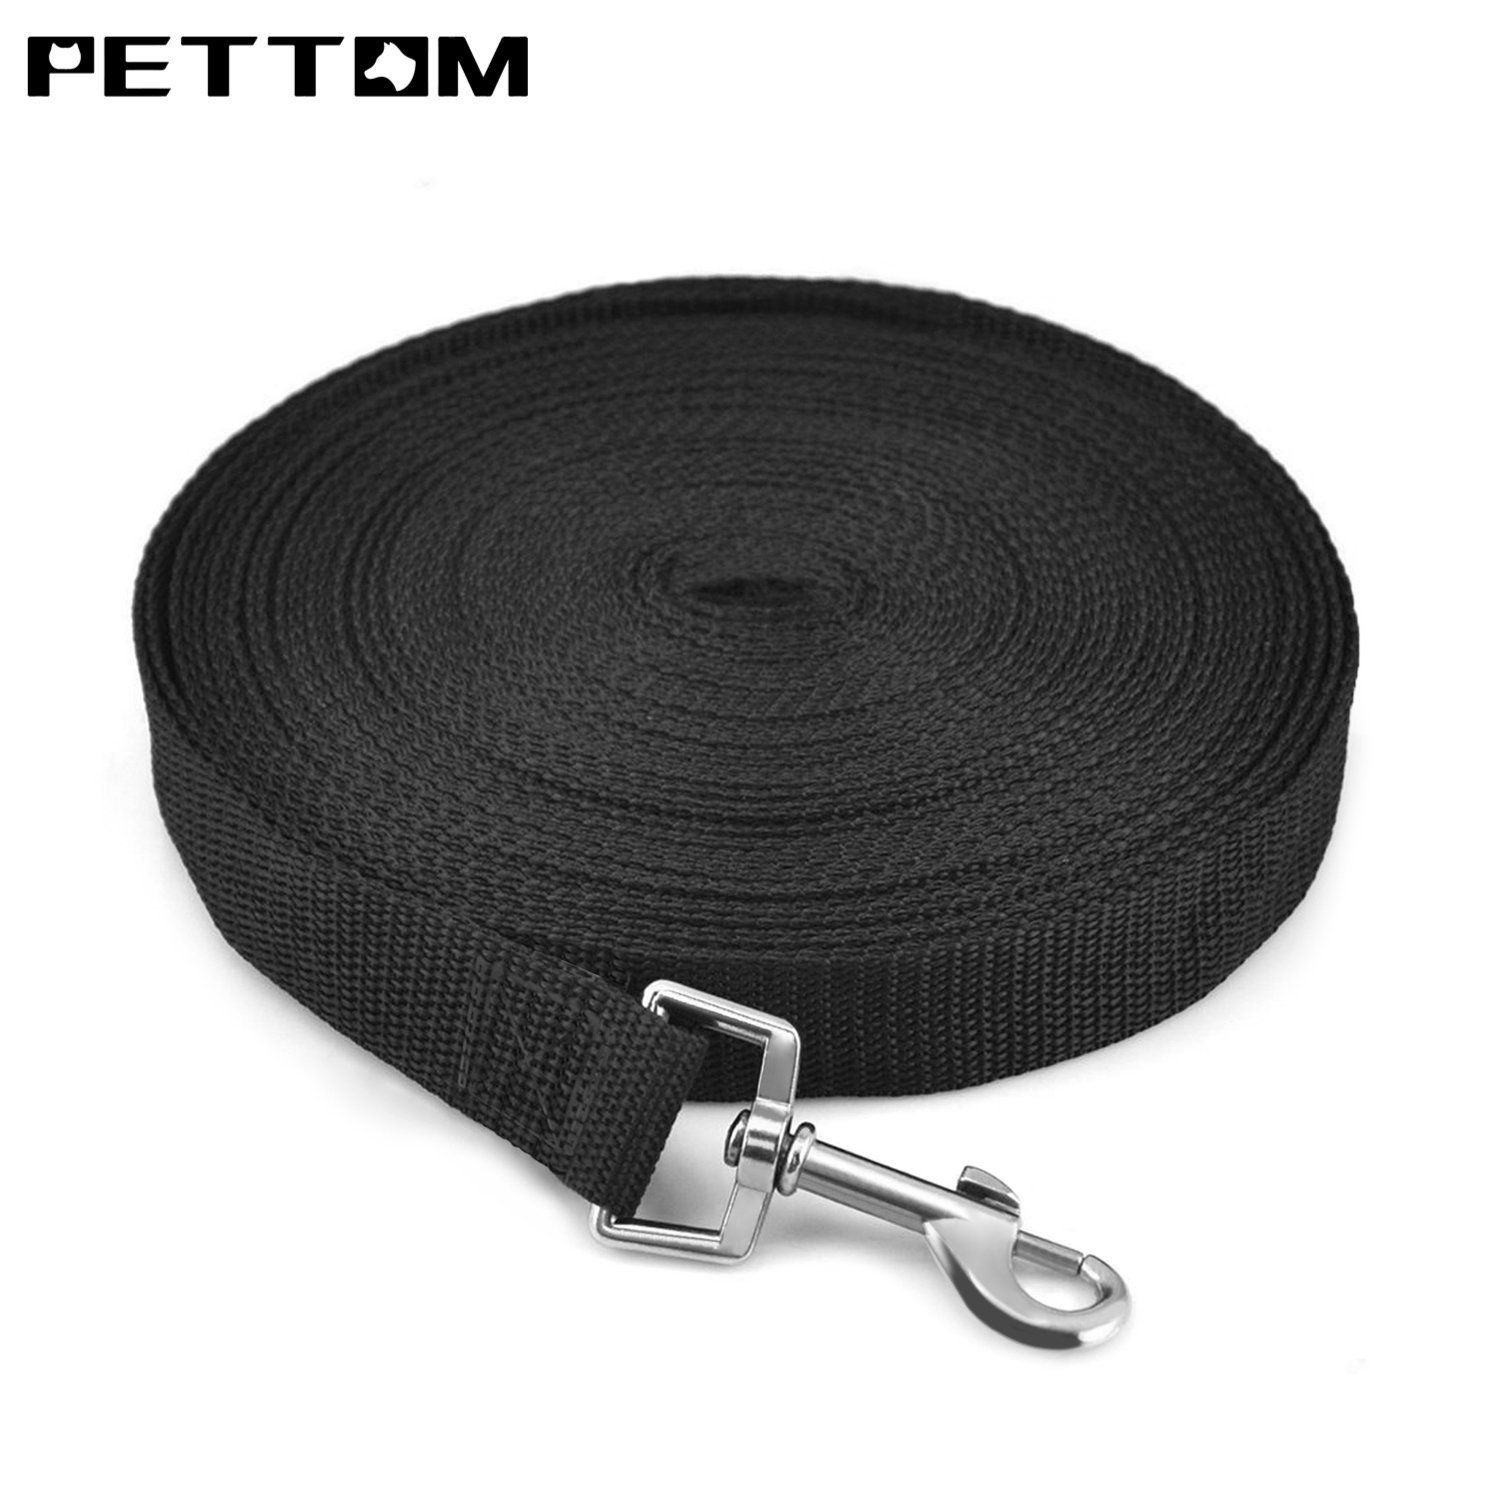 Pettom Gear Cotton Web Dog Training Lead 30 50 Ft Want To Know